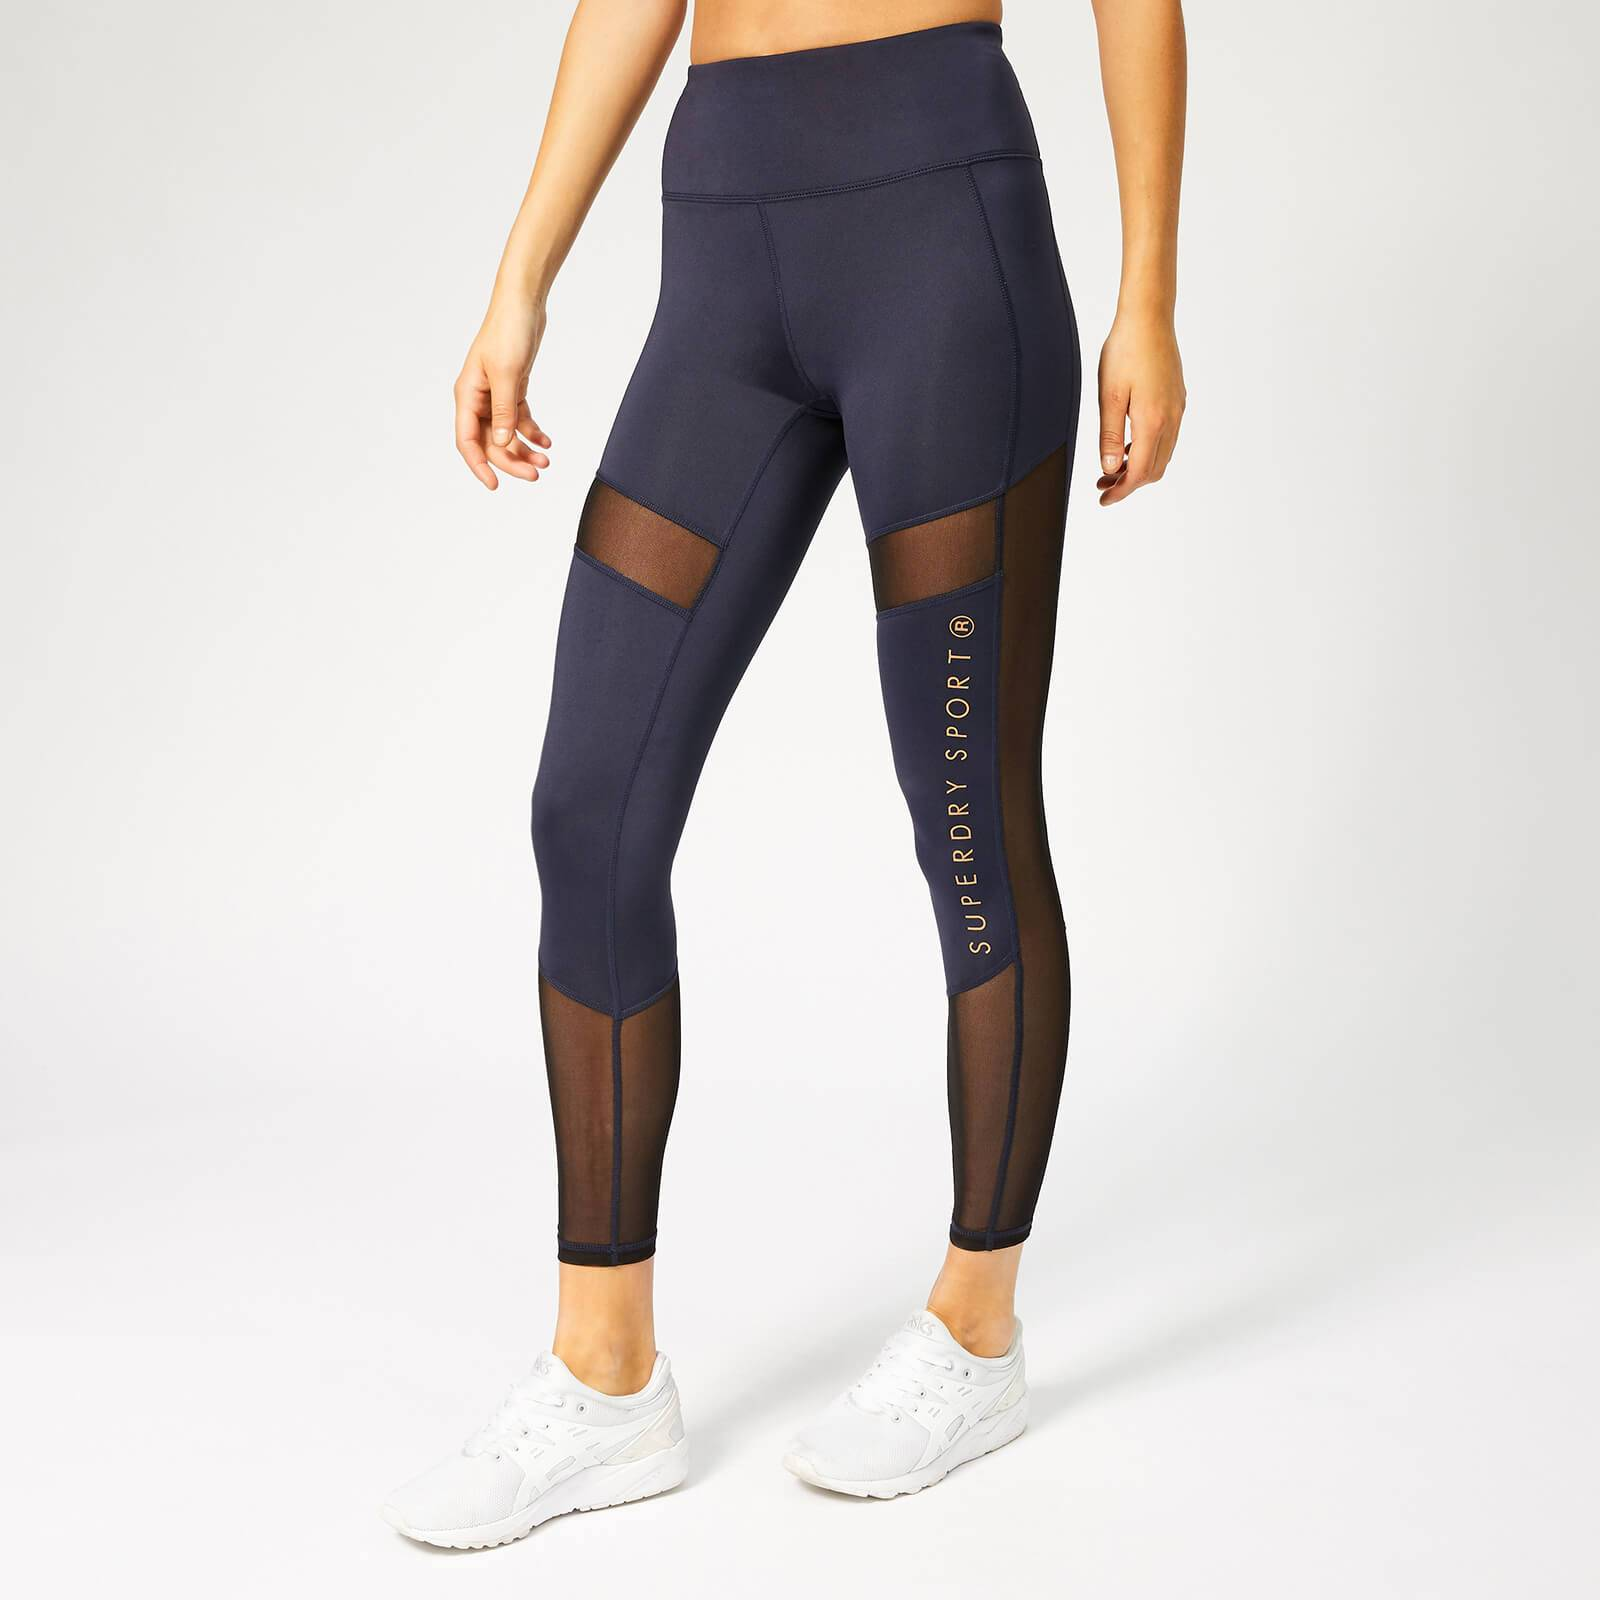 Superdry Sport Women's Active Studio Mesh Leggings - Eclispe Navy Marl - L - Blue